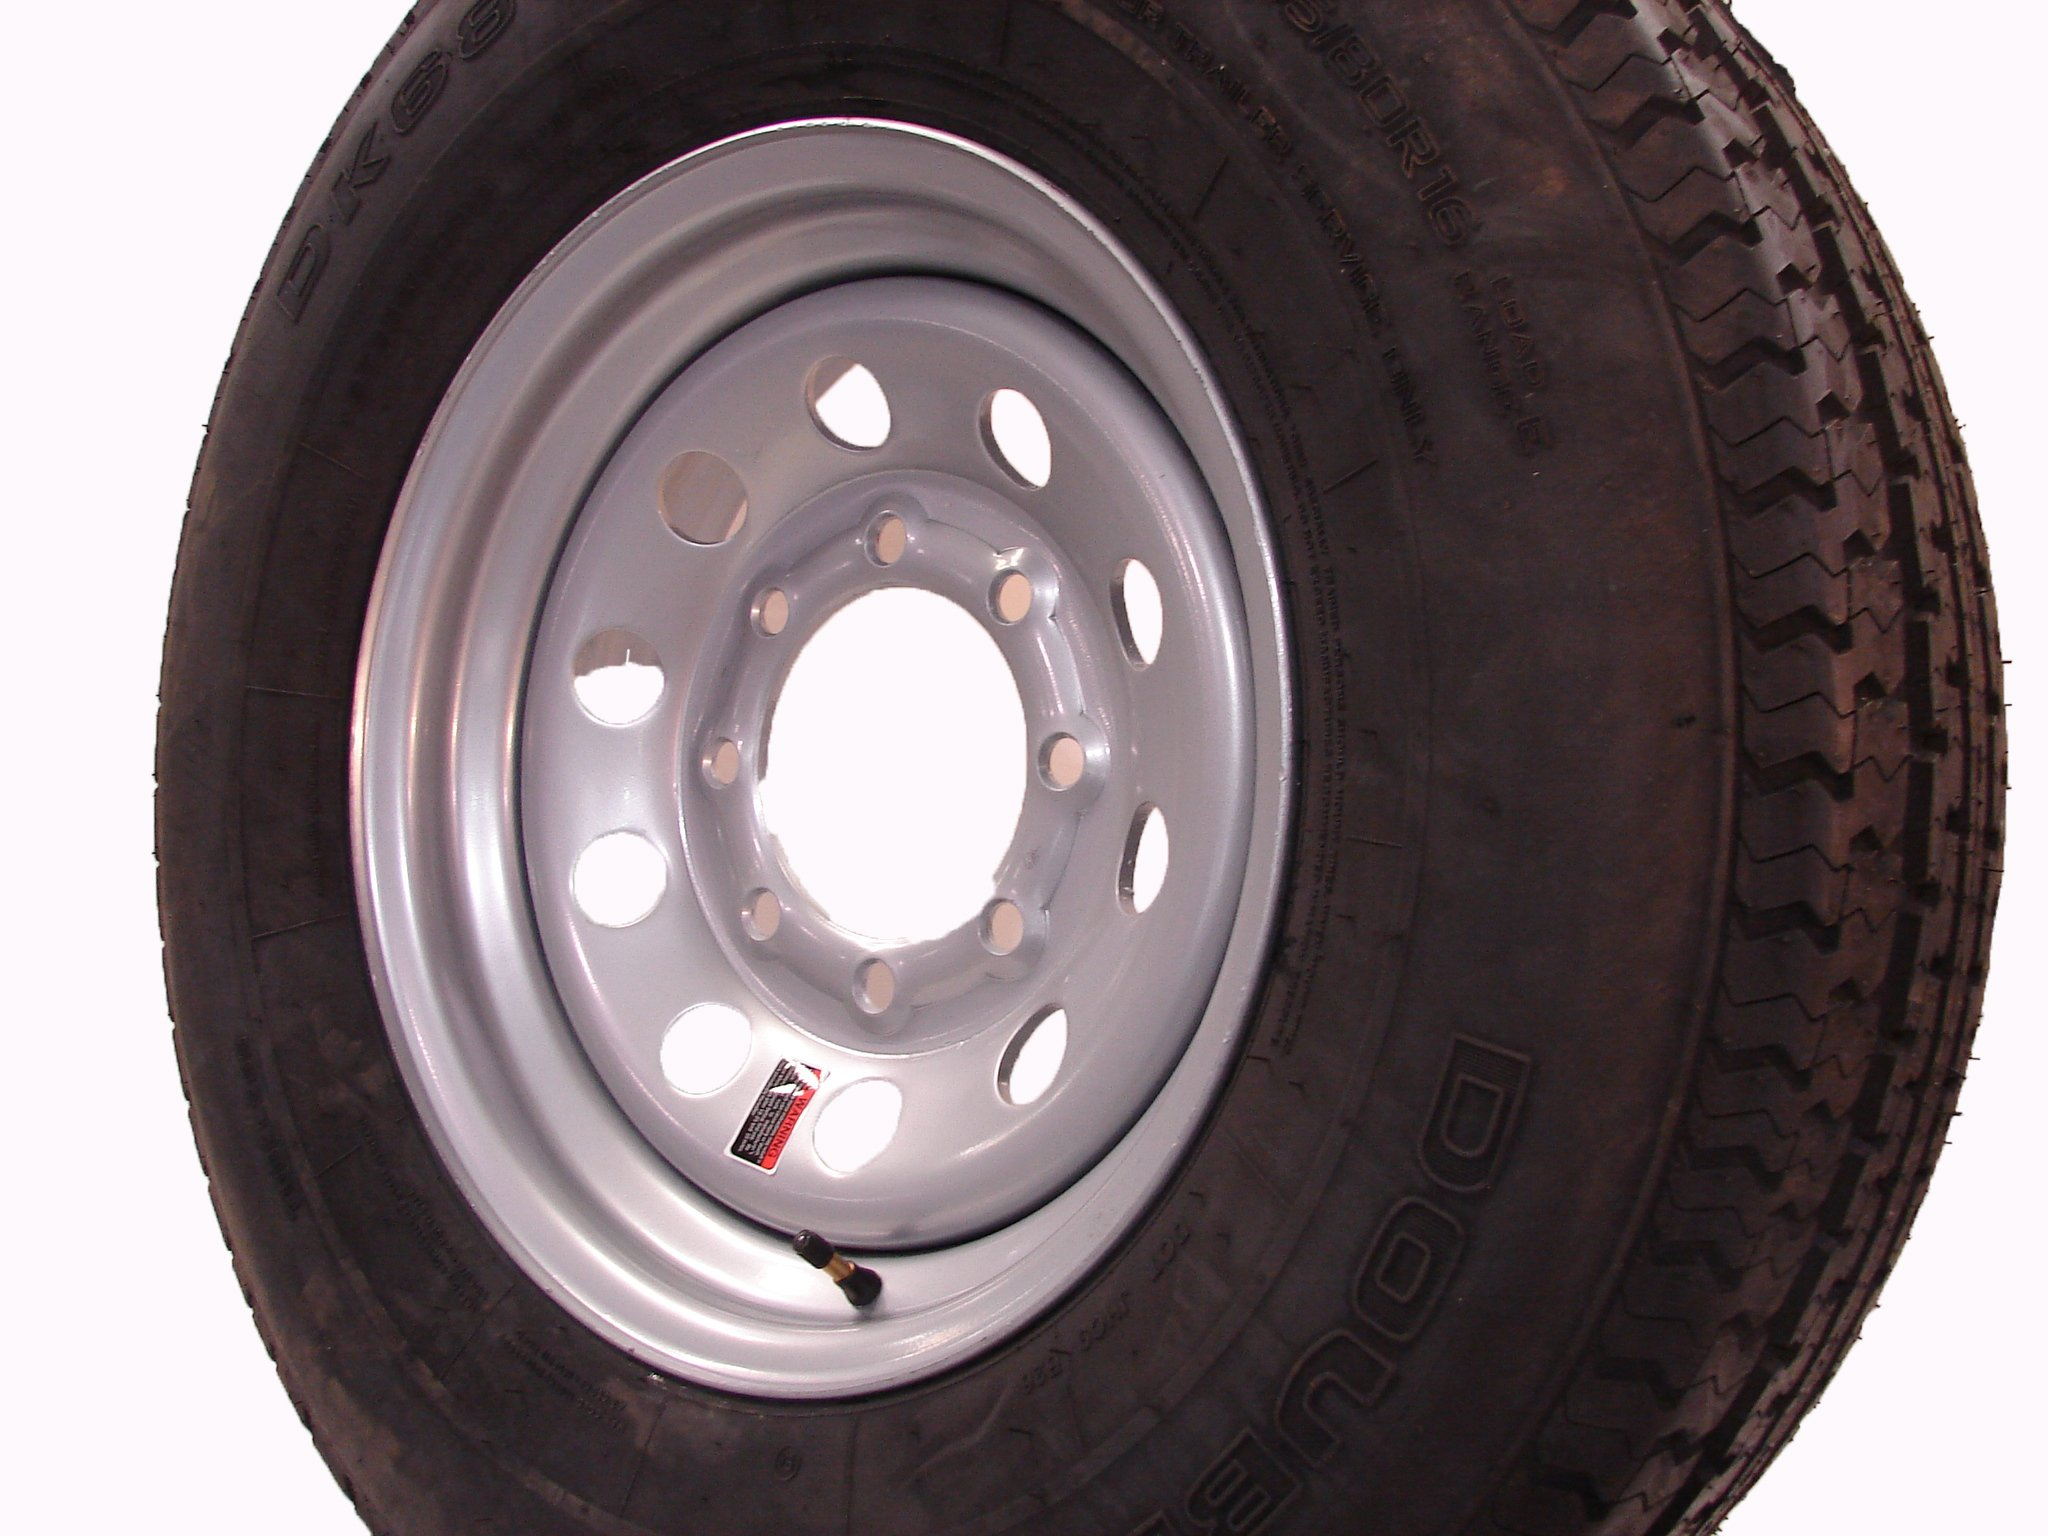 16'' Silver Mod Trailer Wheel 8 Lug with Radial ST235/80R16 Tire Mounted (8x6.5) bolt circle